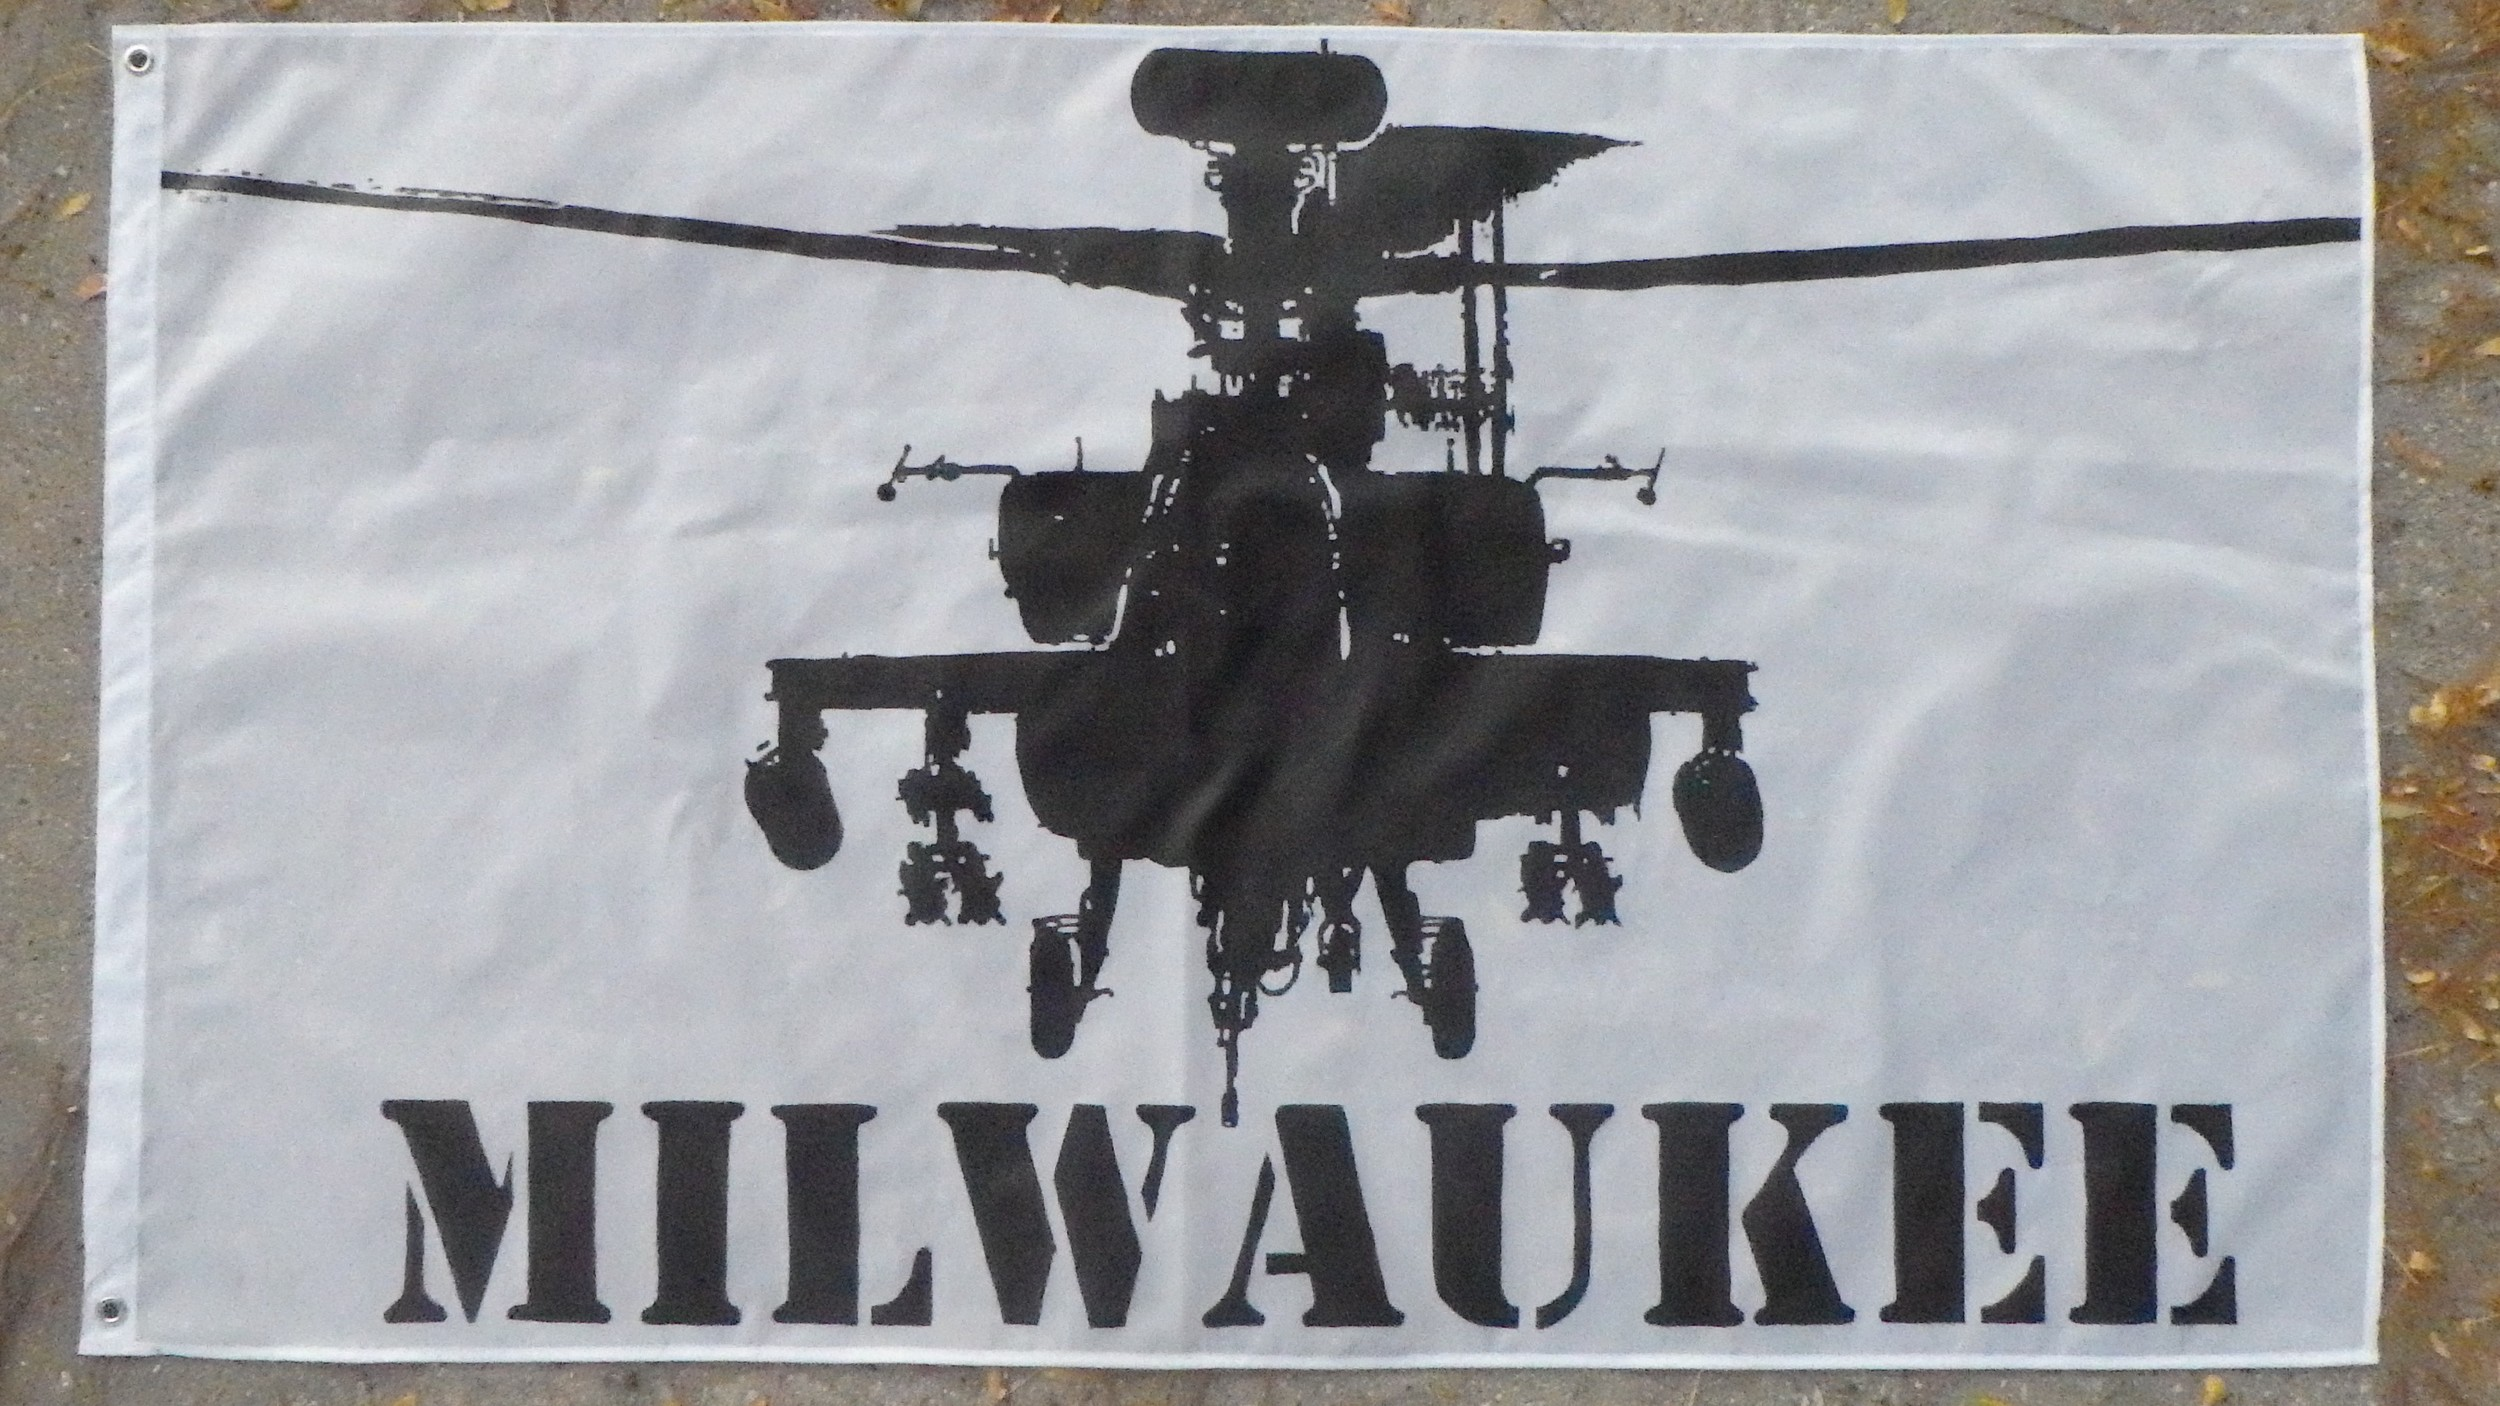 Tock Custom - Milwaukee Apache Flag